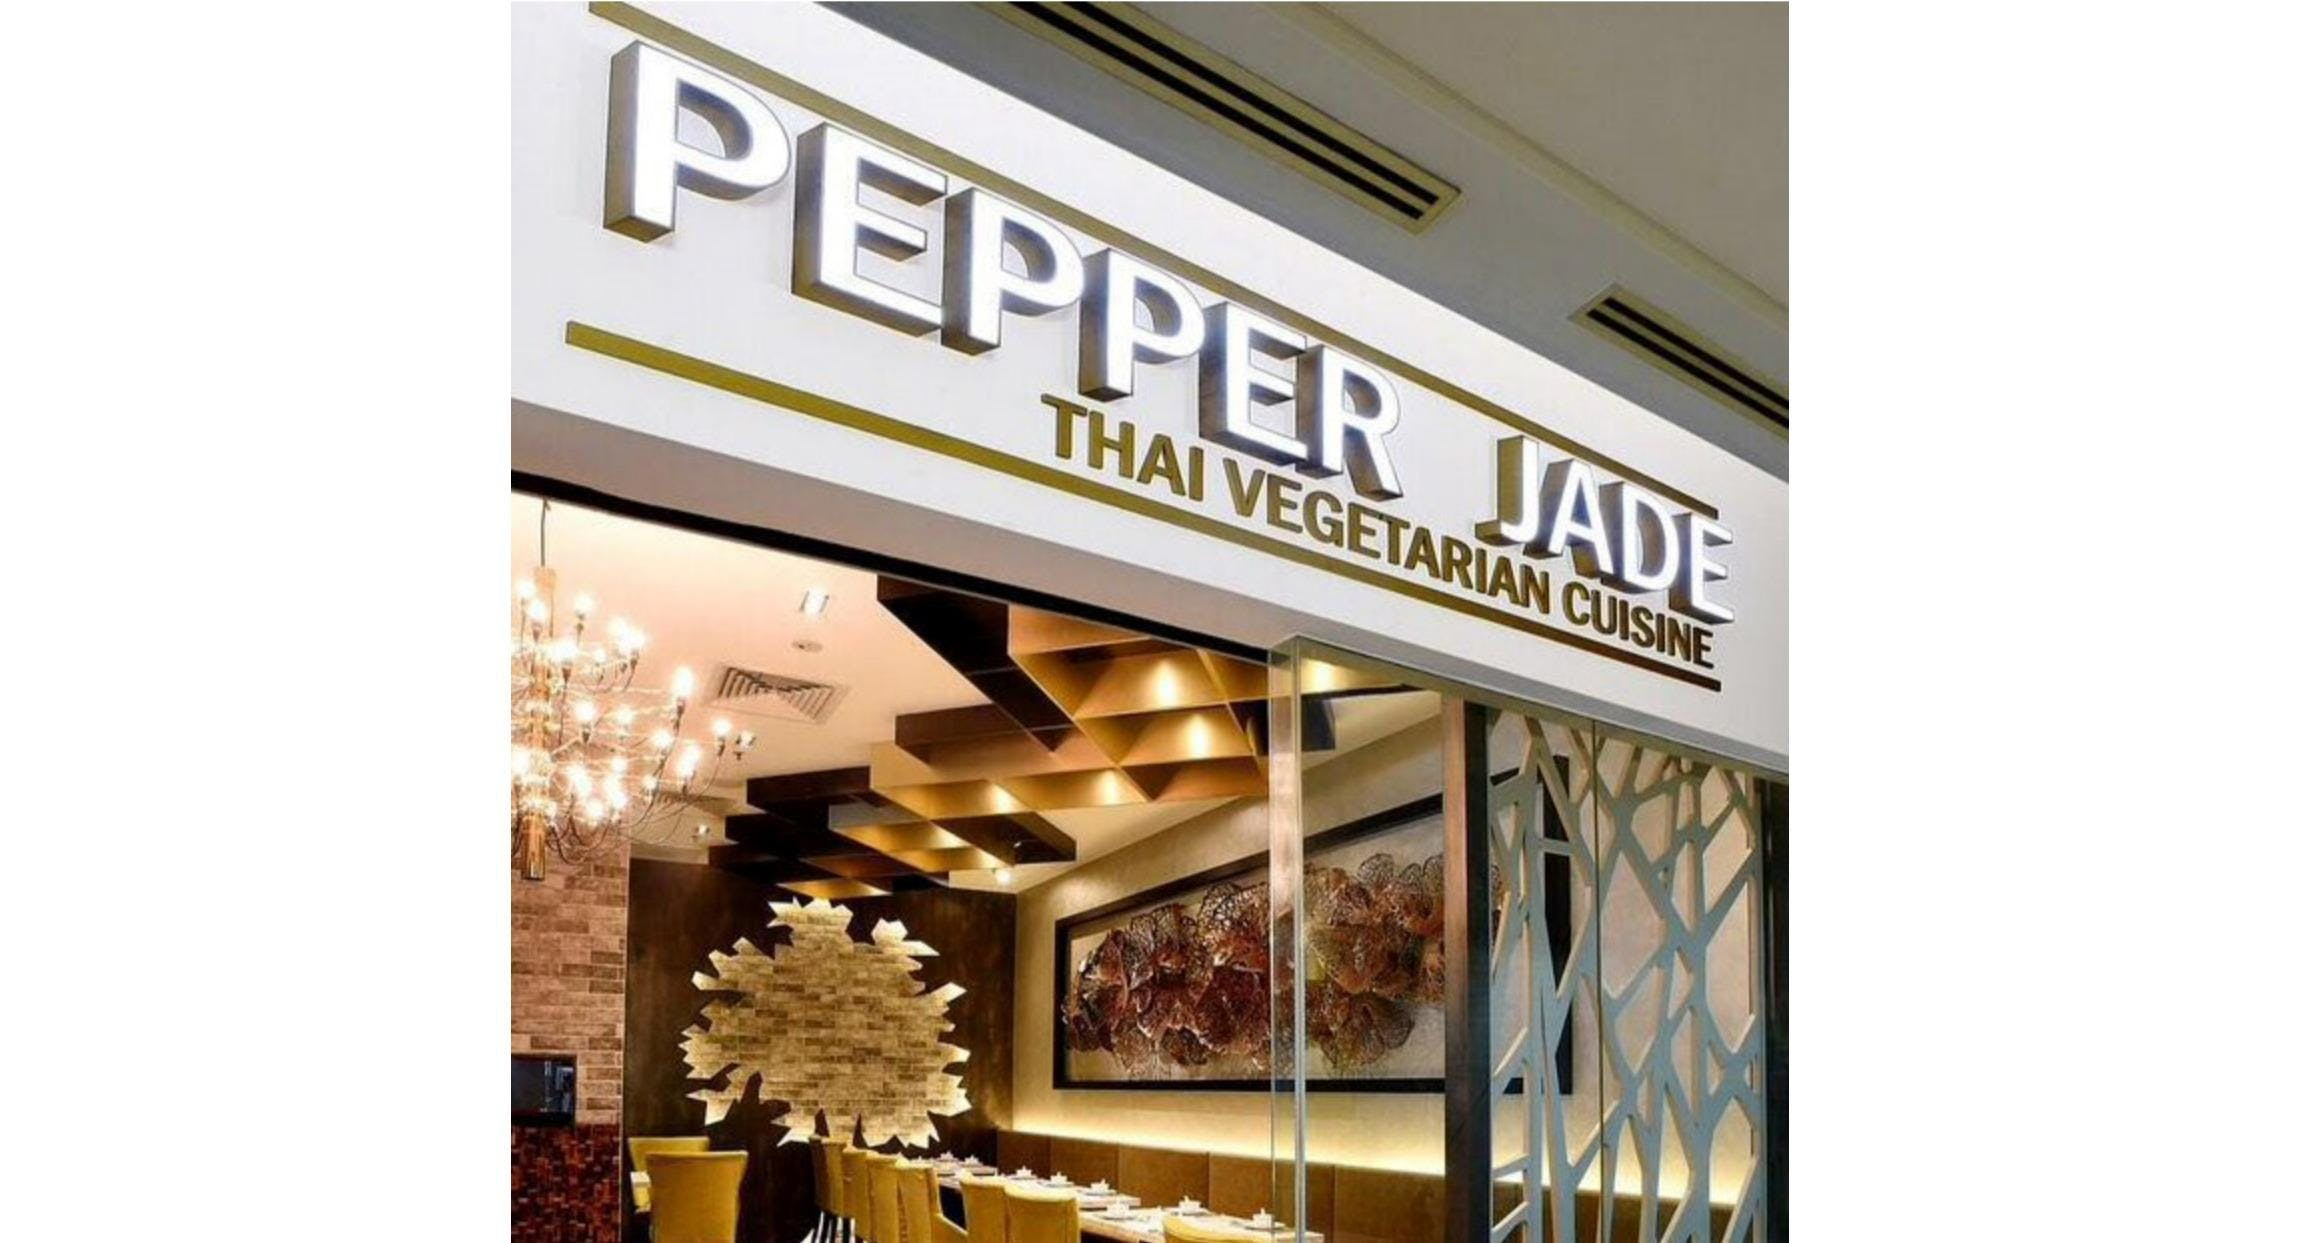 Pepper Jade Thai Vegetarian Cuisine Singapore image 2